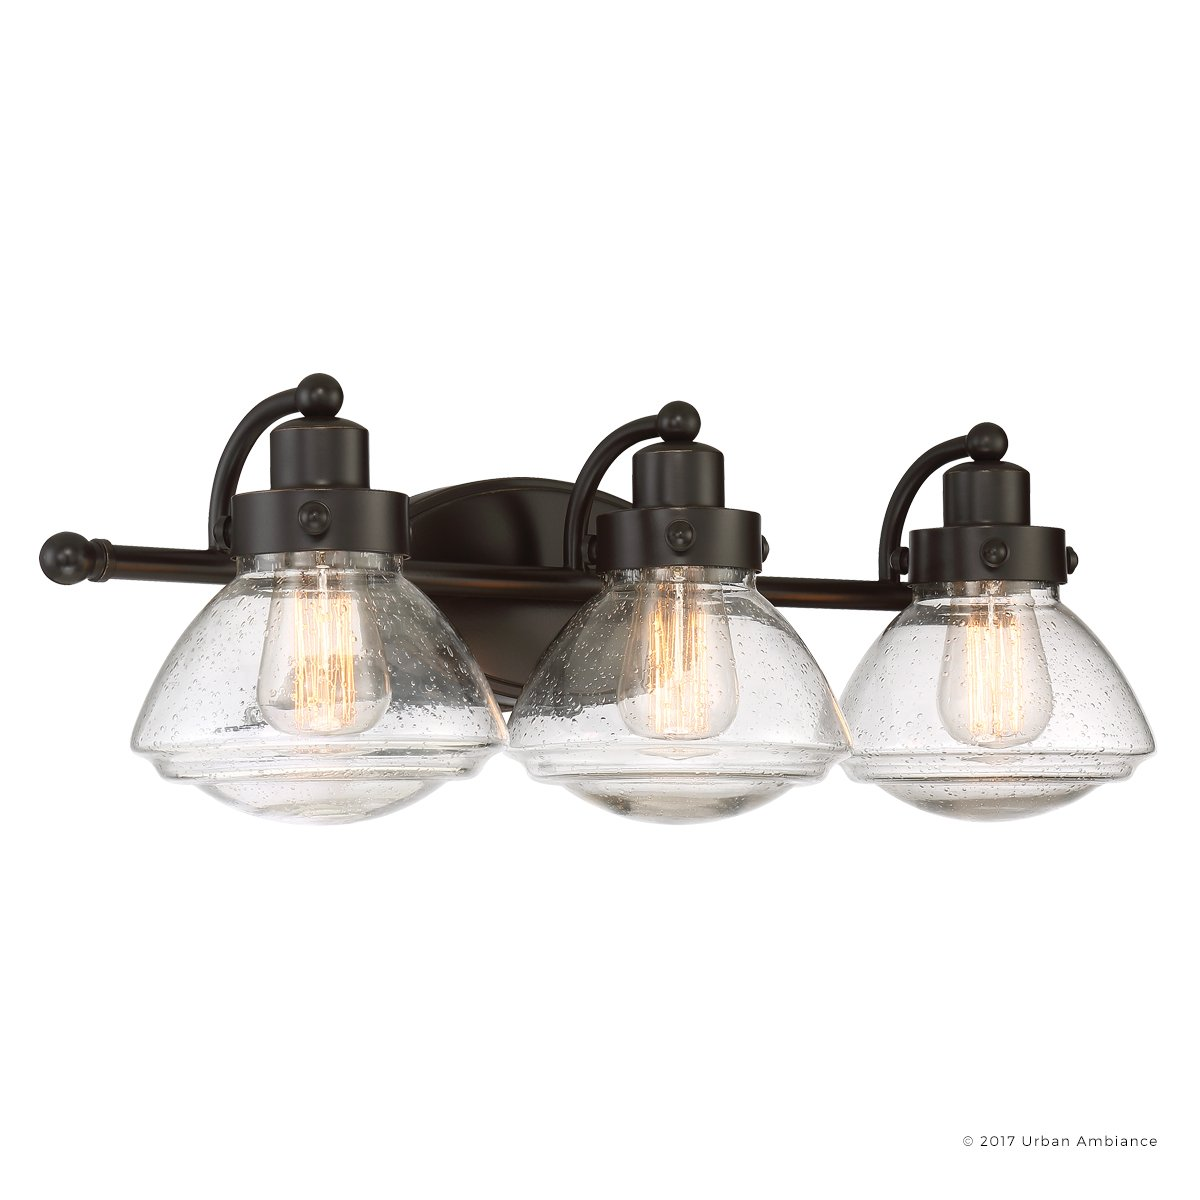 Luxury Transitional Bathroom Vanity Light, Medium Size: 8''H x 25''W, with Rustic Style Elements, Oil Rubbed Parisian Bronze Finish and Seeded Schoolhouse Glass, UQL2652 by Urban Ambiance by Urban Ambiance (Image #1)